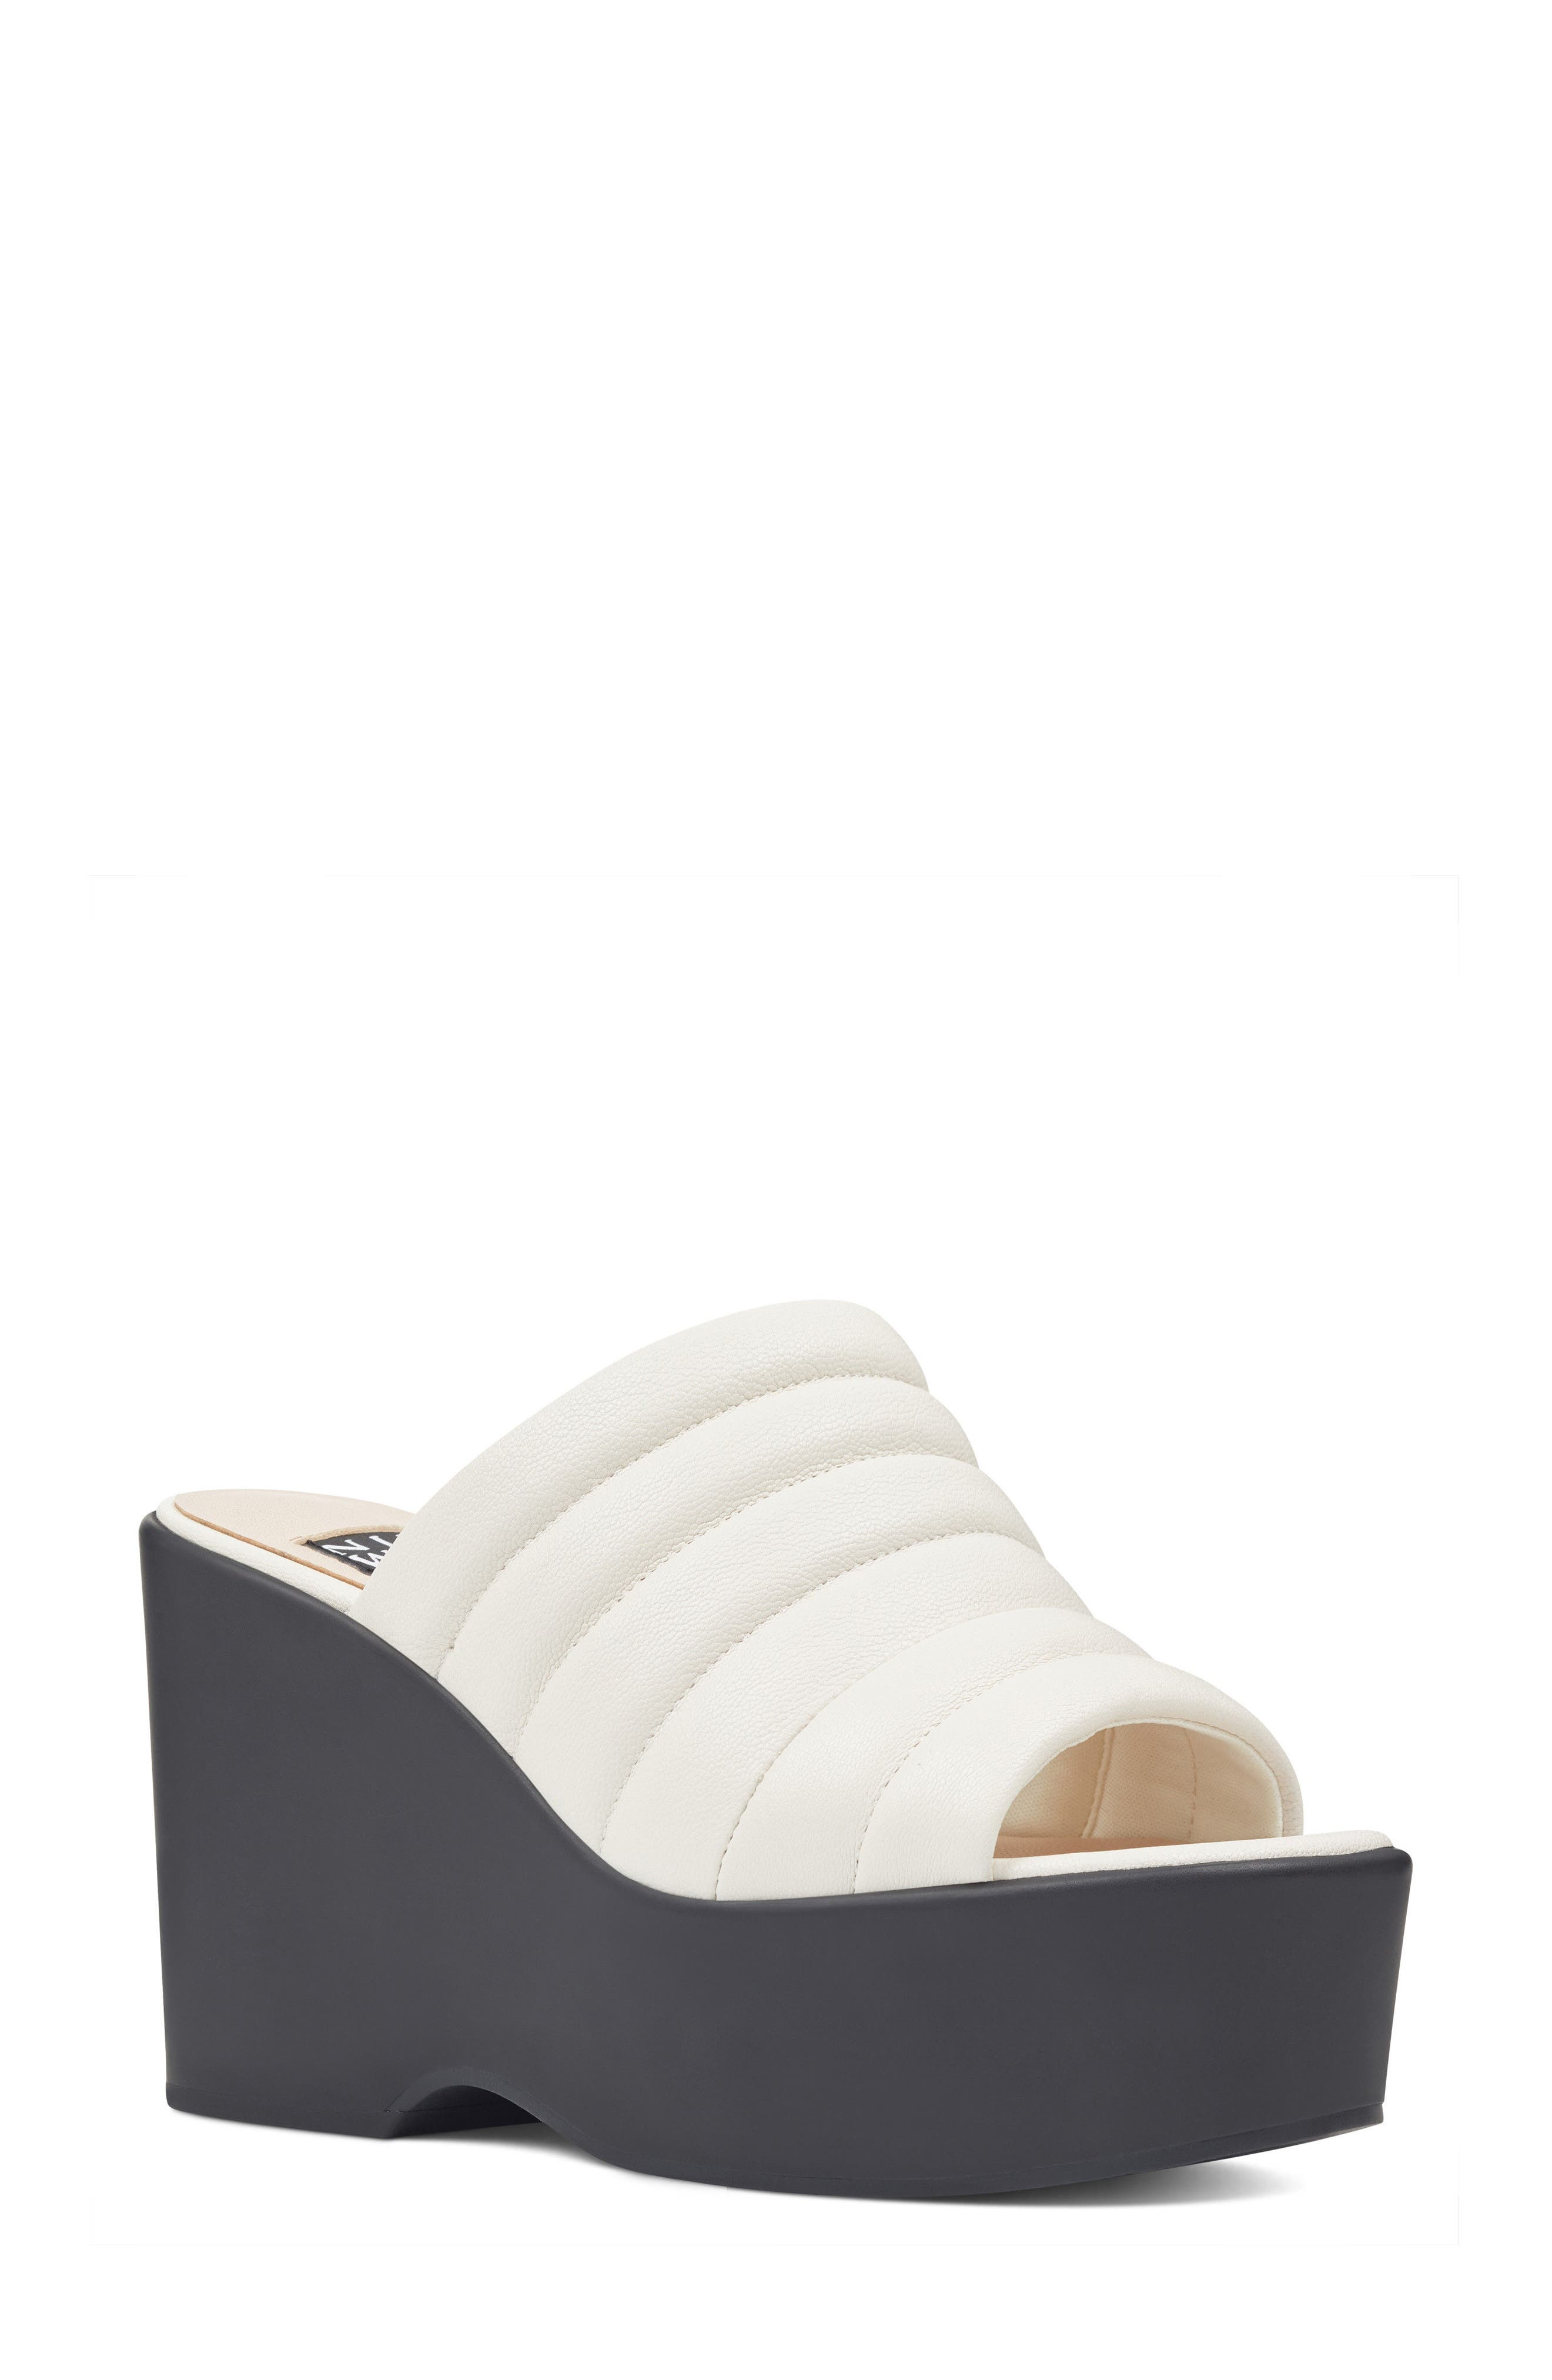 Millie - 40th Anniversary Capsule Collection Platform Wedge,                         Main,                         color, Off White Leather